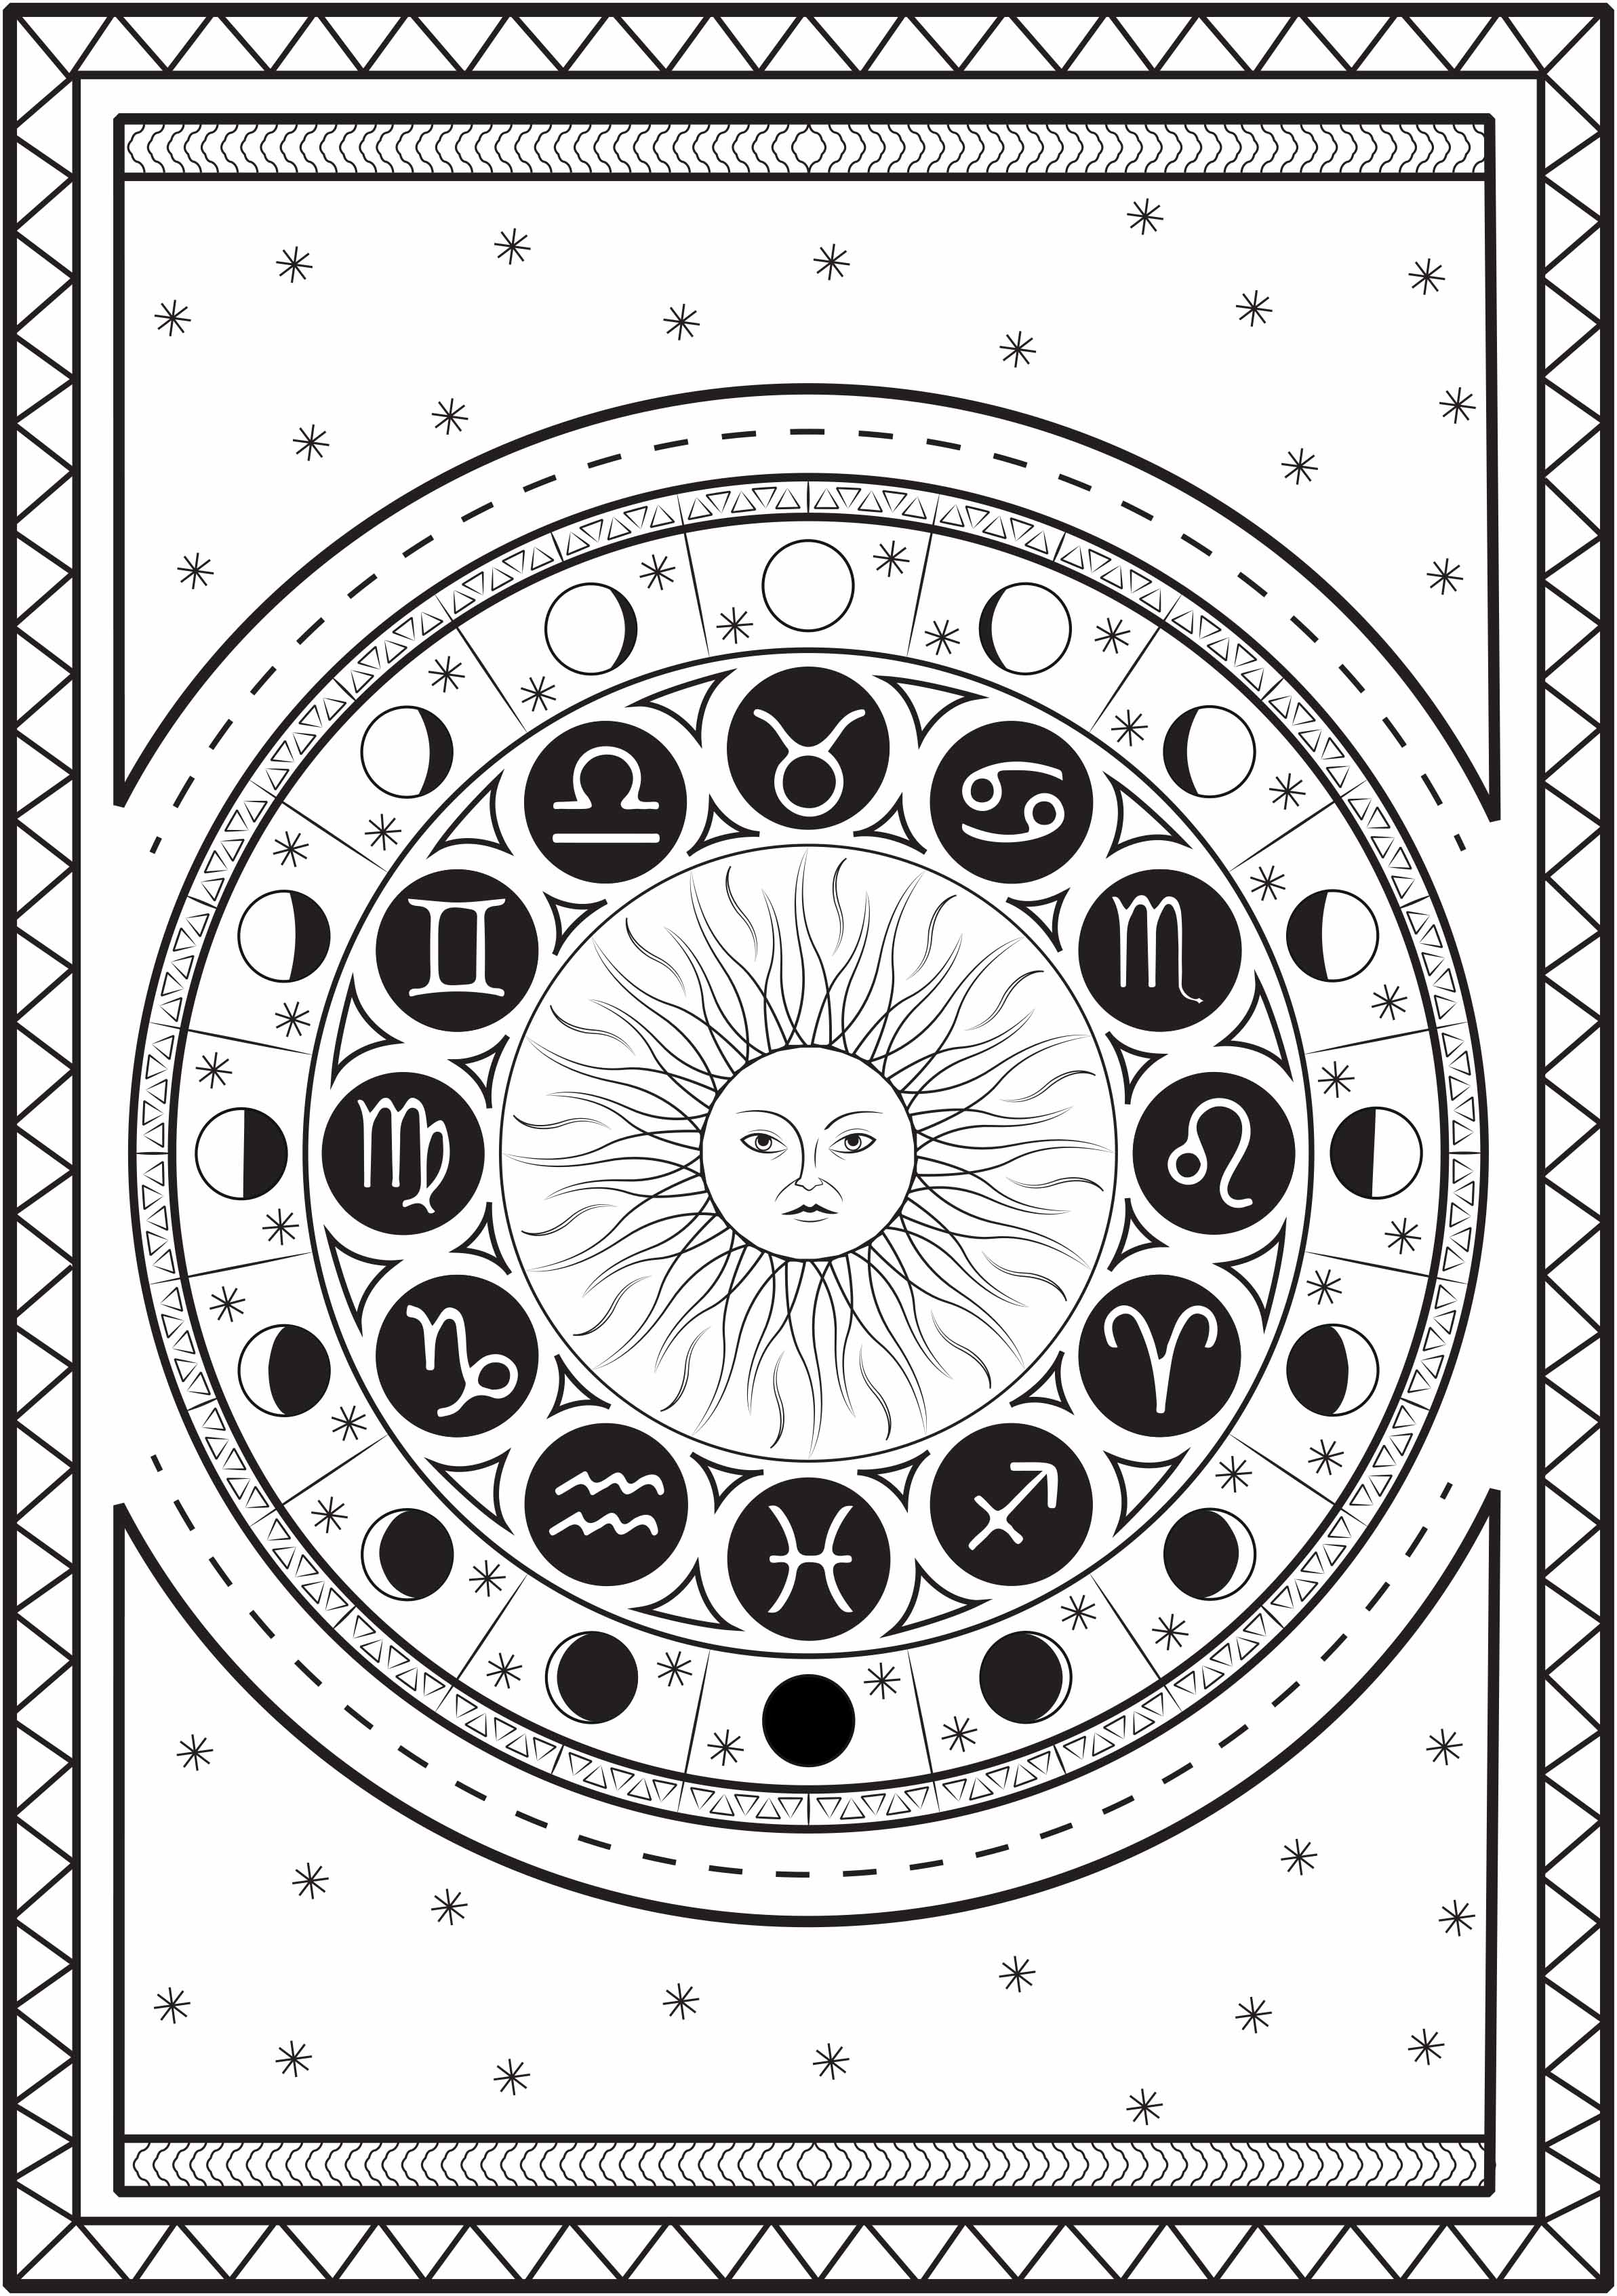 Mandala composed of astrological signs around a sun, with the cycle of the moon, on a starry background